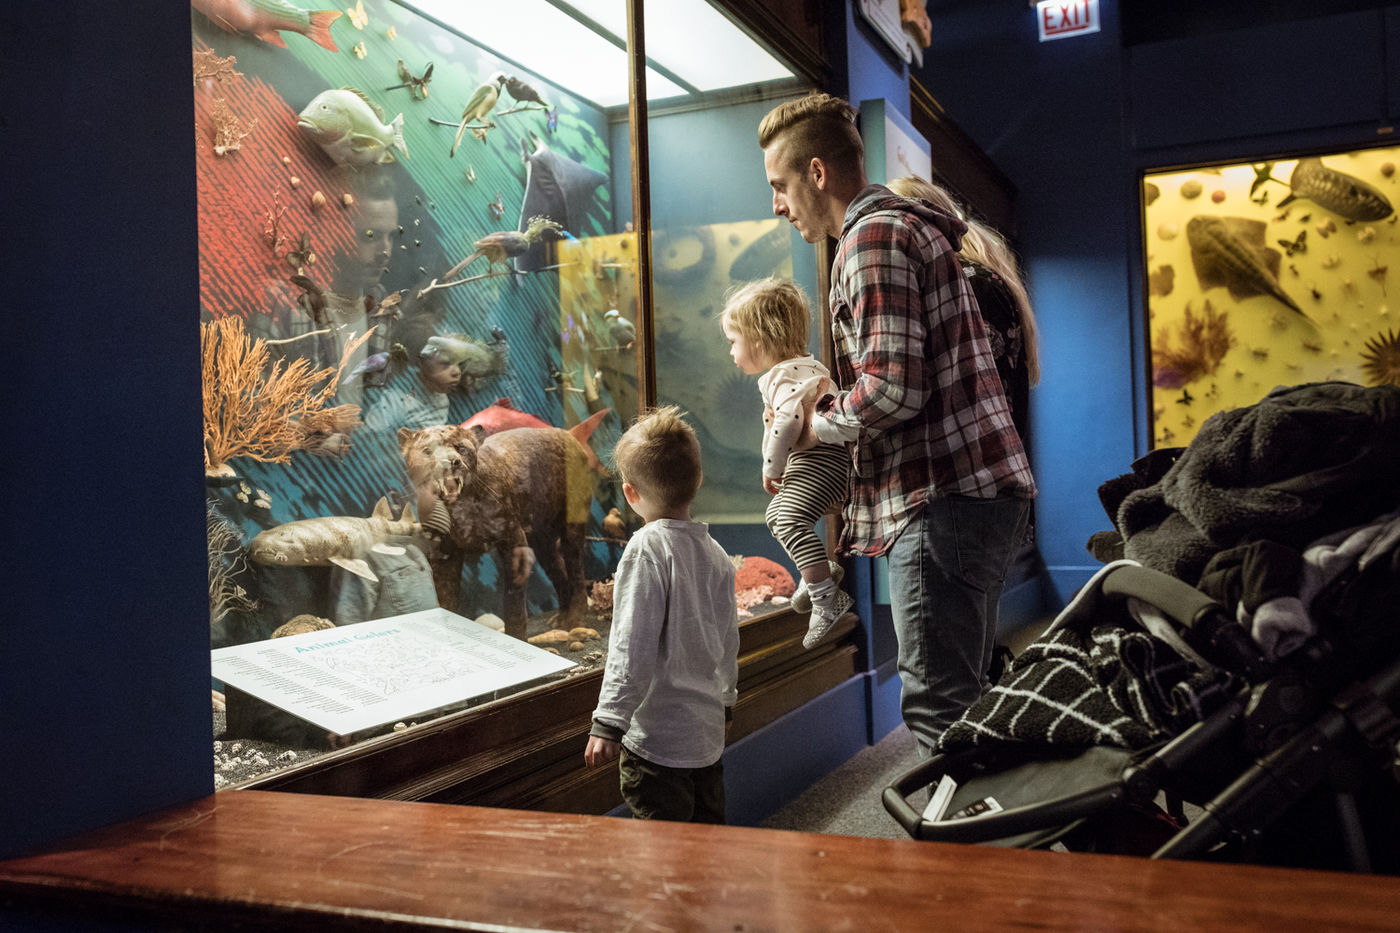 Two young visitors and their caretakers take a closer look at a diorama.